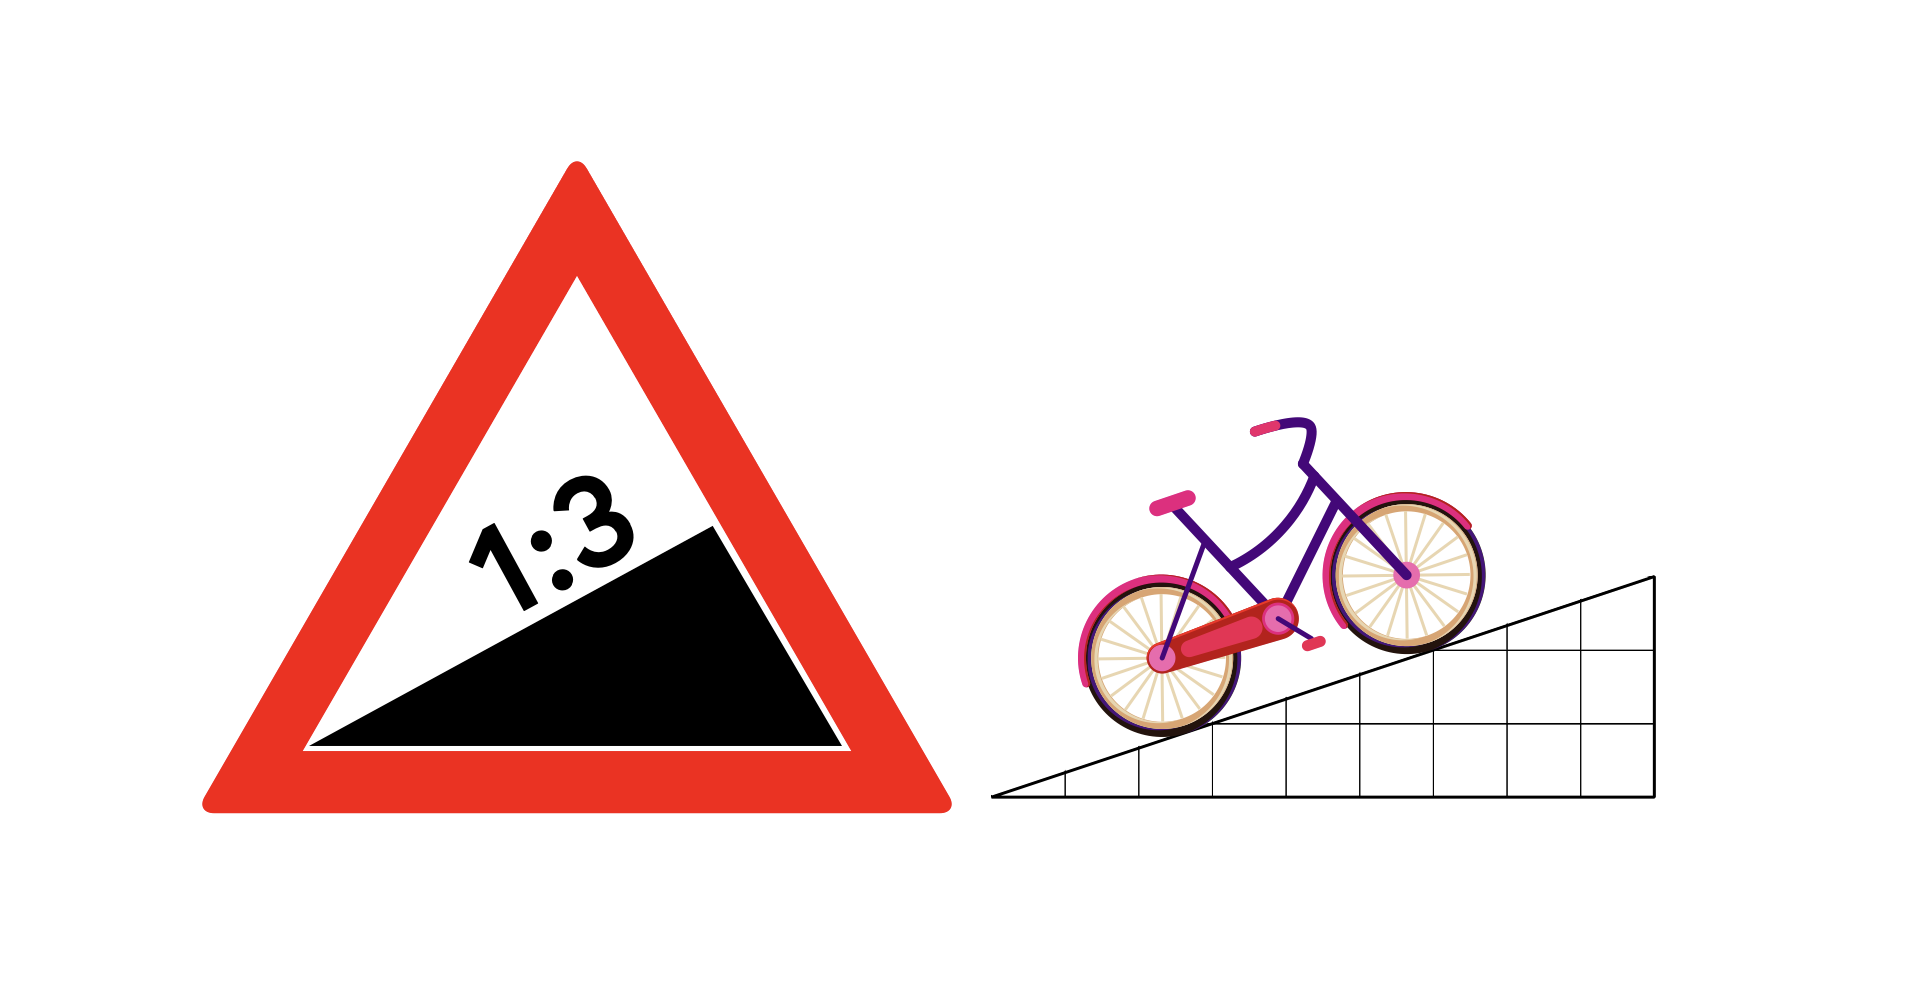 On the left there is a British road sign for steepness, this is a red equal sided triangle, with a white triangle centre, this has a ratio 1:3 in black text above a black triangle which fits within the white centre and fit half of the centre on the right and slopes down to the bottom of the white centre on the left. To the right of this is a another triangle of black grid lines the mimics the black triangle in the road sign and has a black, pink and purple image of a bicycle on top of the slope of the triangle grid